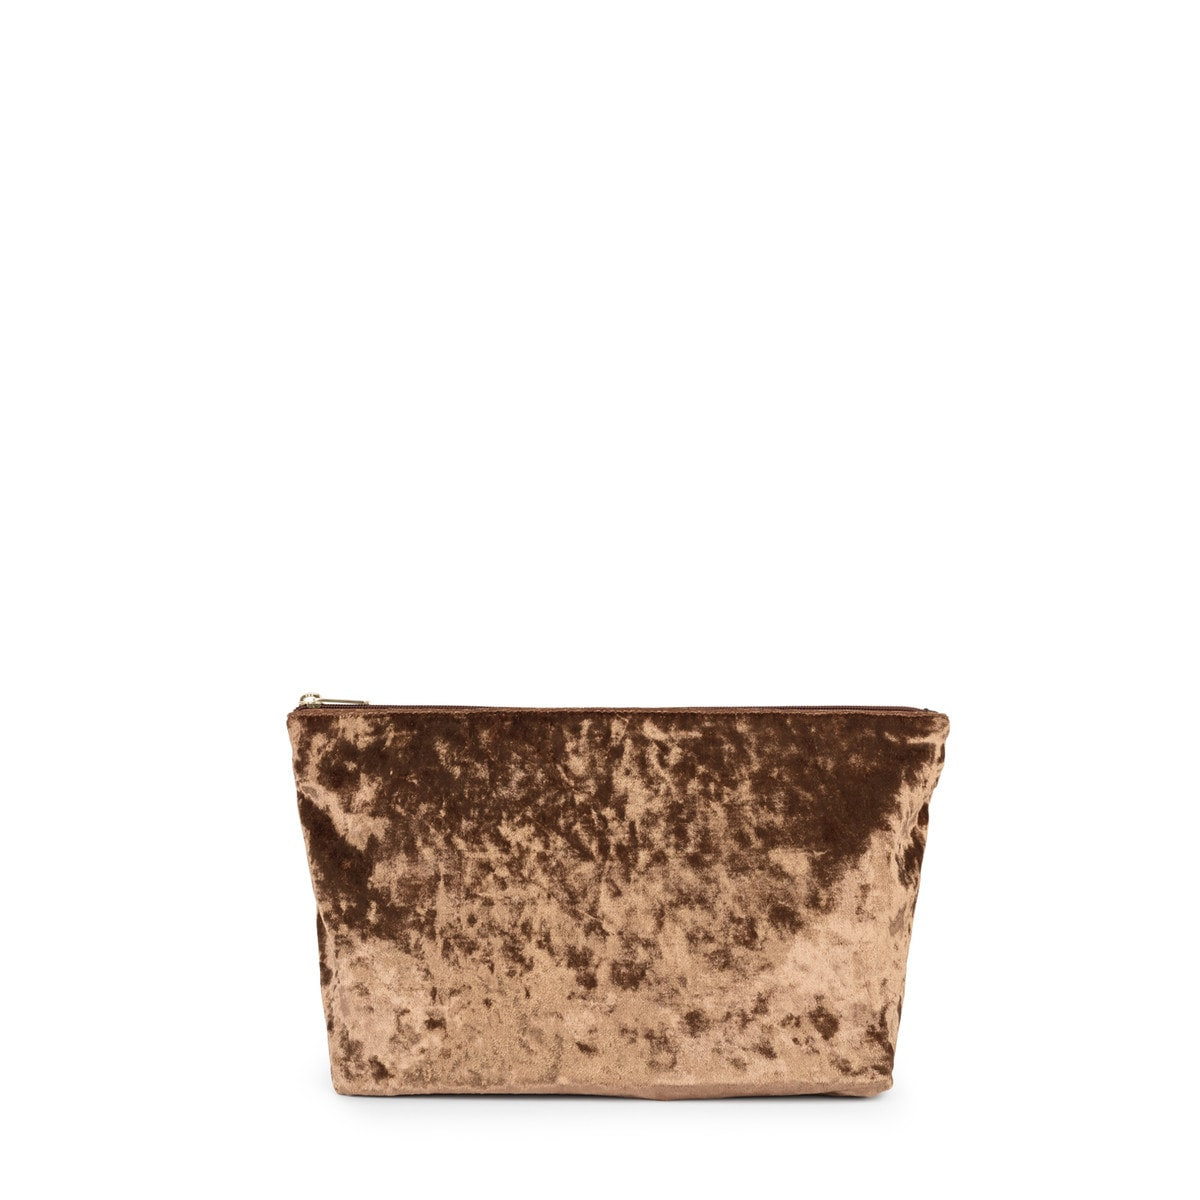 Small gold colored Velvet Kaos Shock Handbag